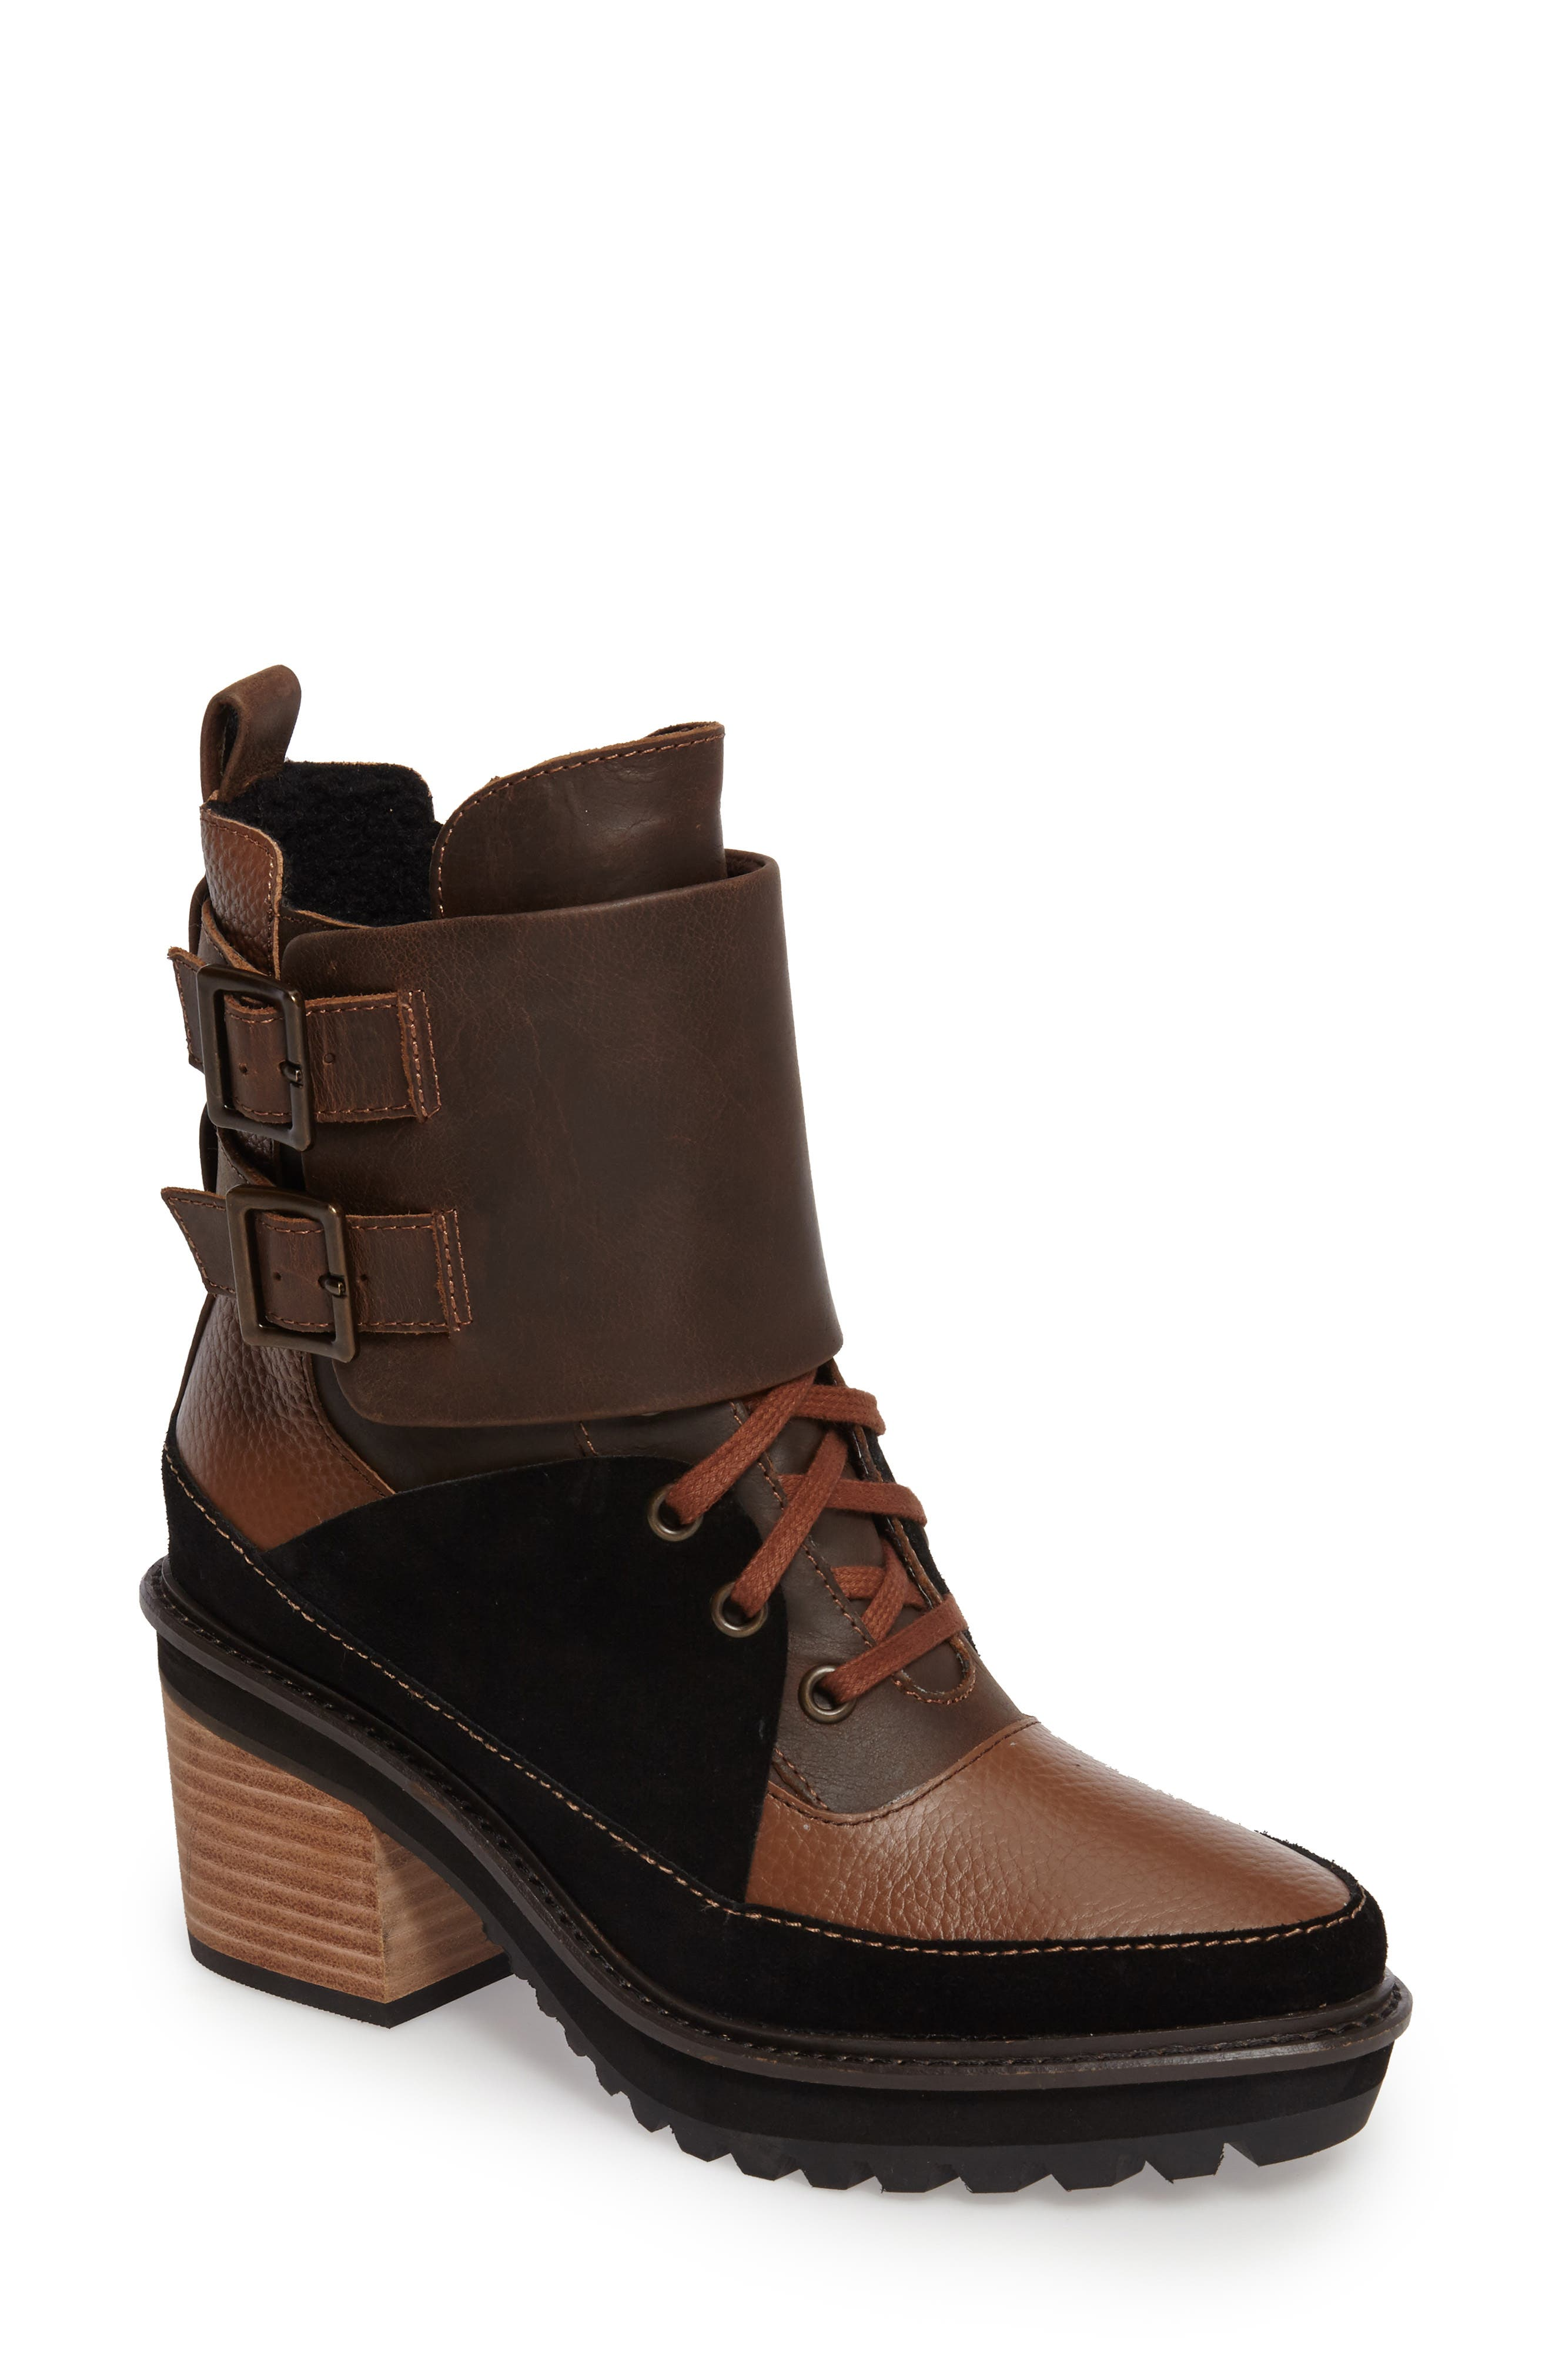 Peak Bootie,                             Main thumbnail 1, color,                             Timber/ Black/ Cocoa